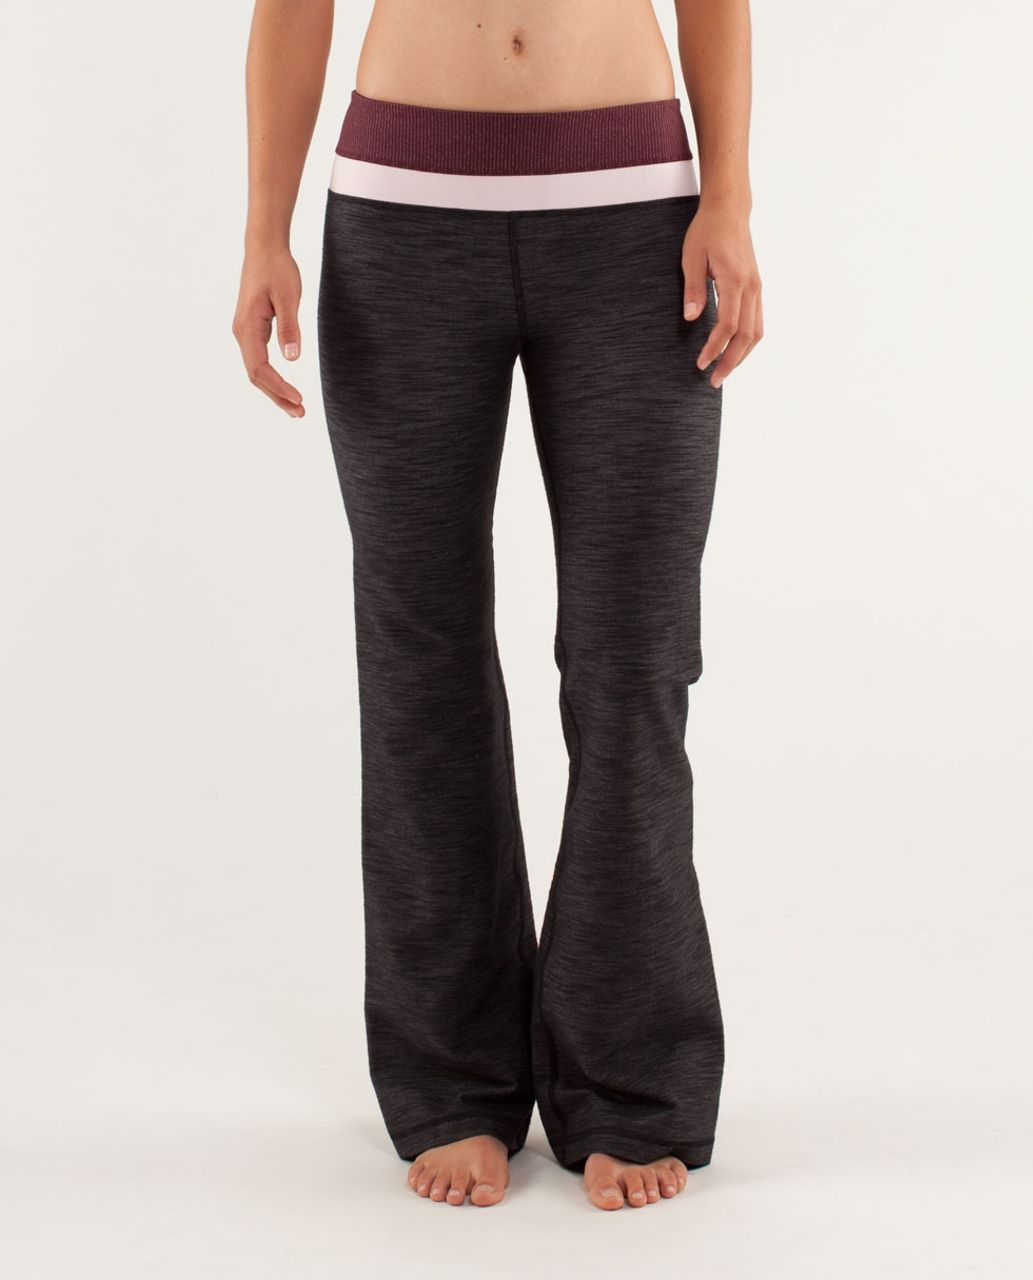 Lululemon Groove Pant *Denim (Regular) - Black Slub Denim / Tonka Stripe Bordeaux Drama / Heathered Bordeaux Drama / Heathered Pret